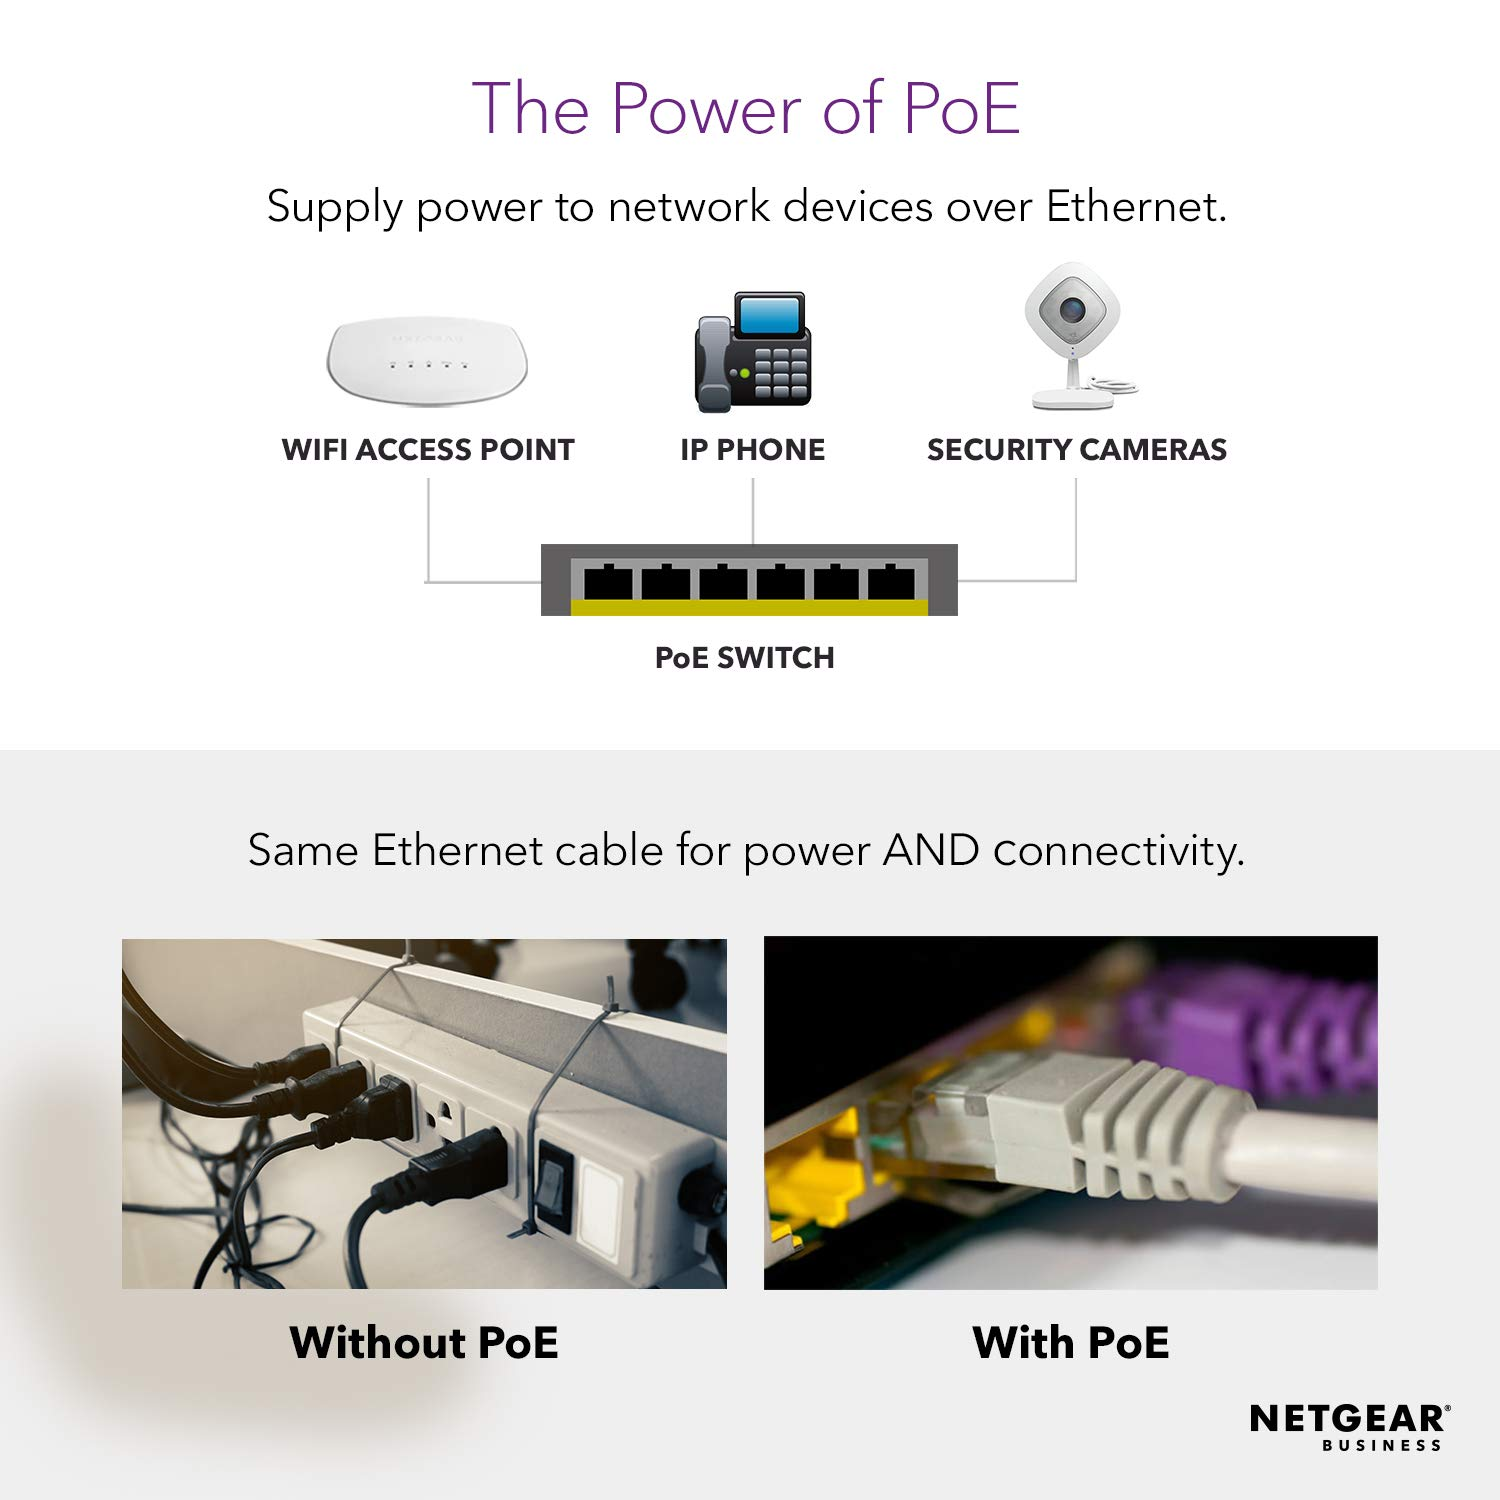 NETGEAR 26-Port Gigabit Ethernet Fully Managed PoE Switch - with 24 x PoE @ 192W Desktop//Rackmount 4 x 1G SFP GSM7226LP M4100 Series and ProSAFE Lifetime Protection